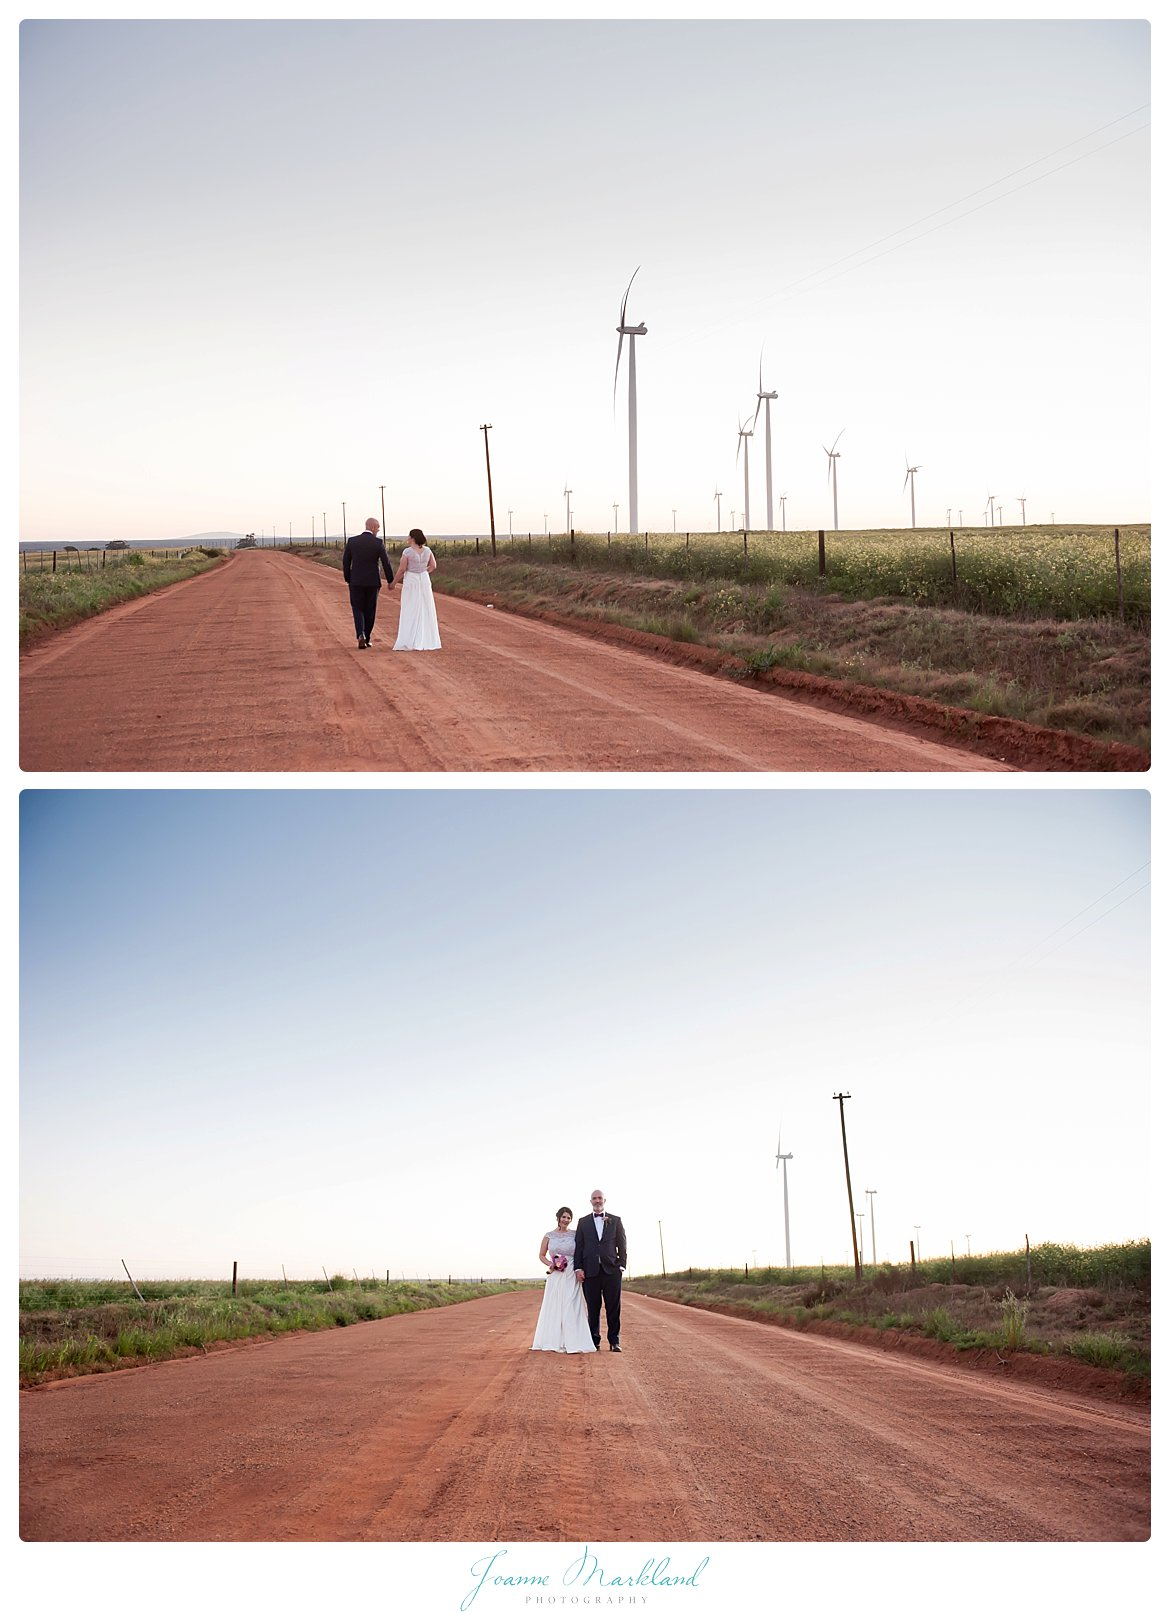 boorwater-wedding-hopefield-west-coast-cape-town-joanne-markland-photography-046